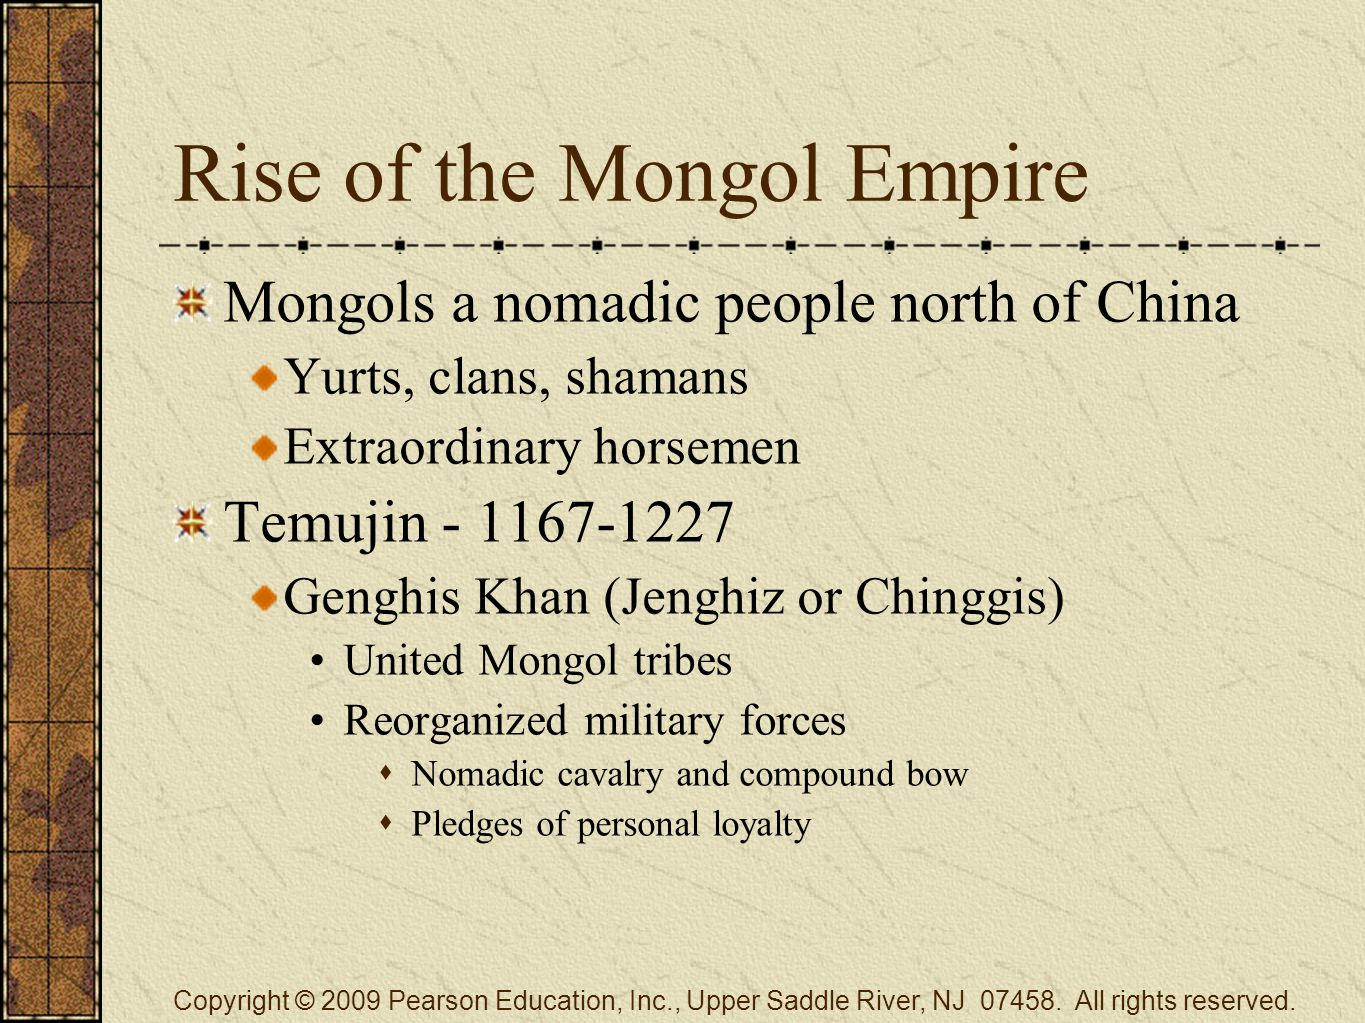 Rise of the Mongol Empire Mongols a nomadic people north of China Yurts, clans, shamans Extraordinary horsemen Temujin - 1167-1227 Genghis Khan (Jenghiz or Chinggis) United Mongol tribes Reorganized military forces  Nomadic cavalry and compound bow  Pledges of personal loyalty Copyright © 2009 Pearson Education, Inc., Upper Saddle River, NJ 07458.